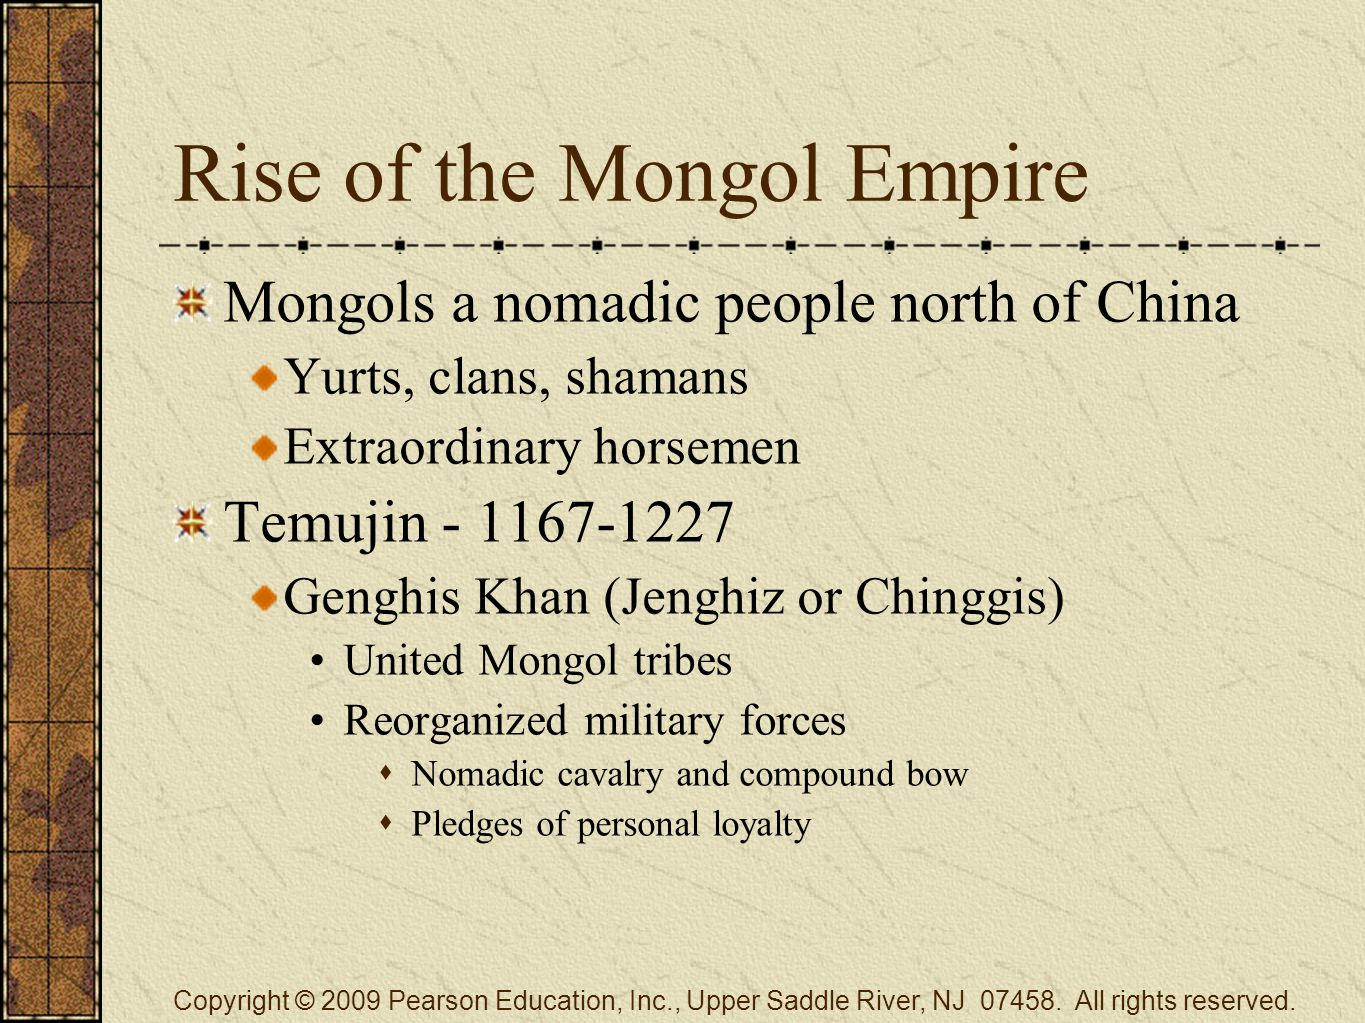 Rise of the Mongol Empire Mongols a nomadic people north of China Yurts, clans, shamans Extraordinary horsemen Temujin - 1167-1227 Genghis Khan (Jenghiz or Chinggis) United Mongol tribes Reorganized military forces  Nomadic cavalry and compound bow  Pledges of personal loyalty Copyright © 2009 Pearson Education, Inc., Upper Saddle River, NJ 07458.